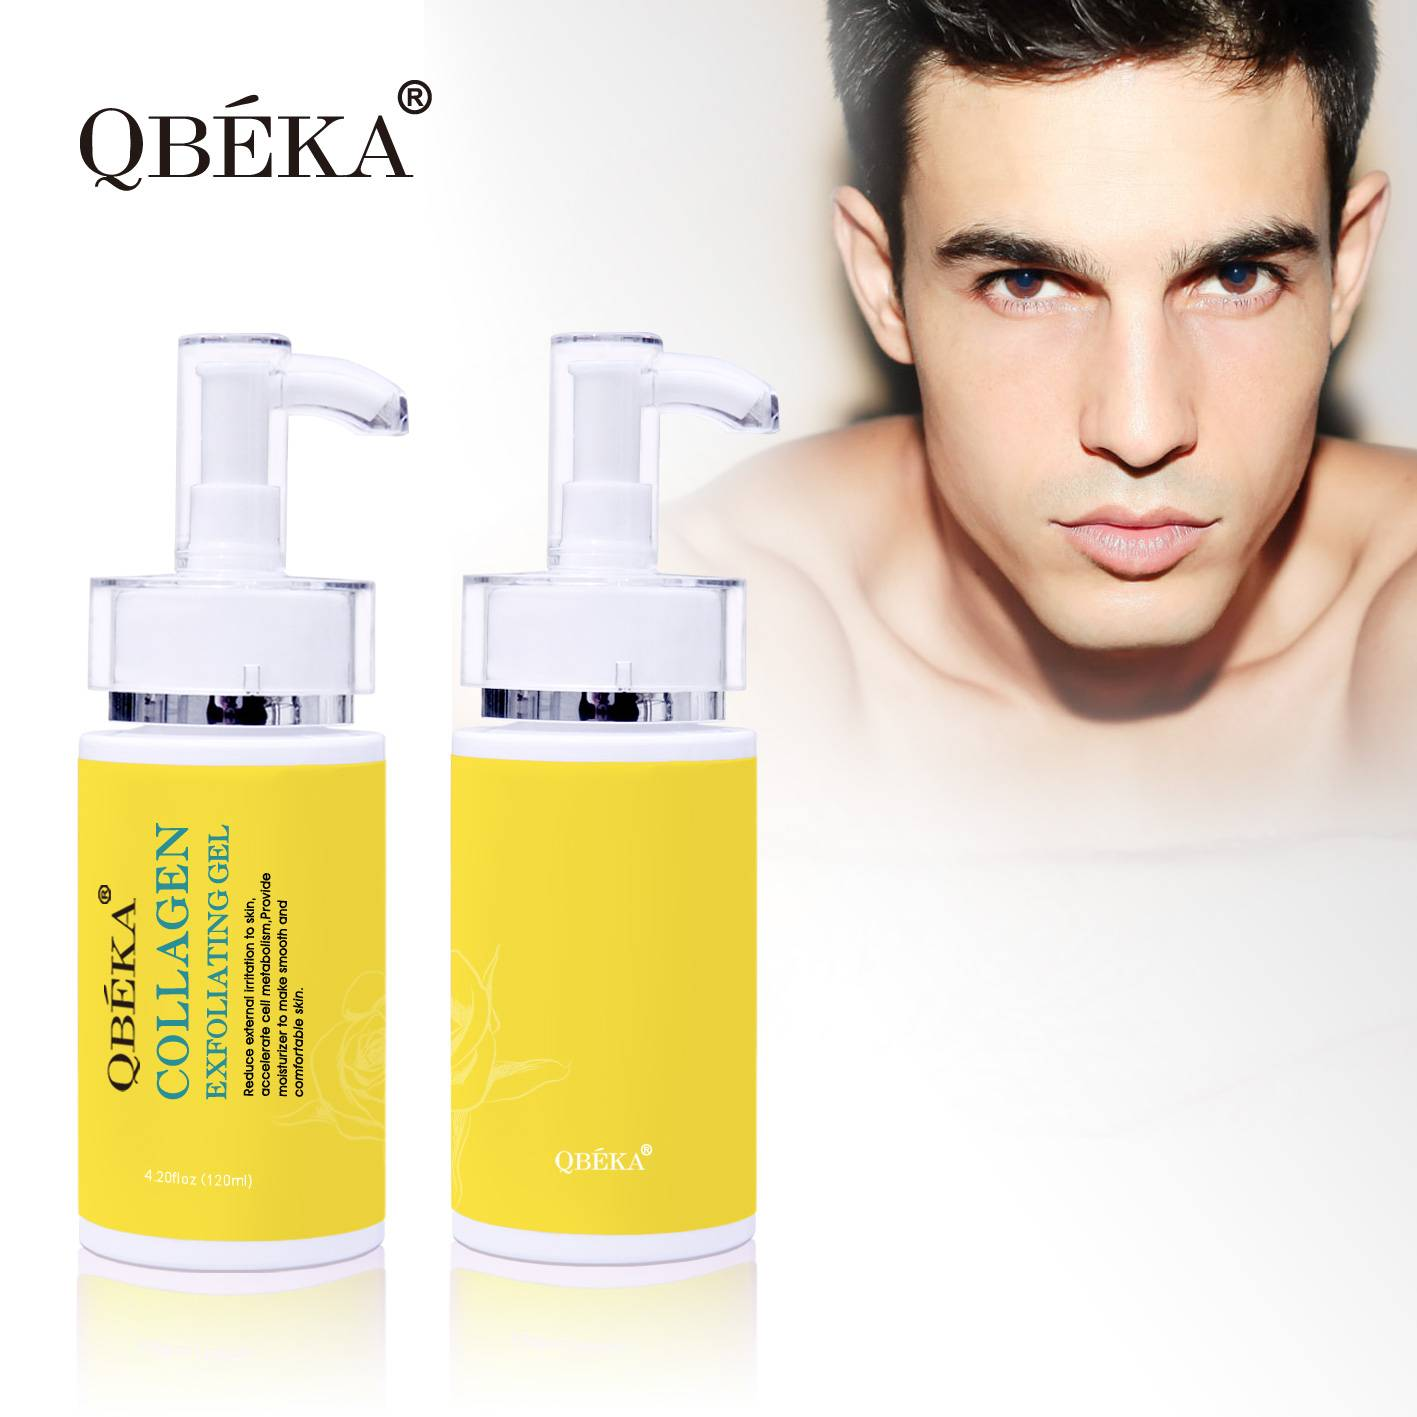 QBEKA Collagen Exfoliating Gel